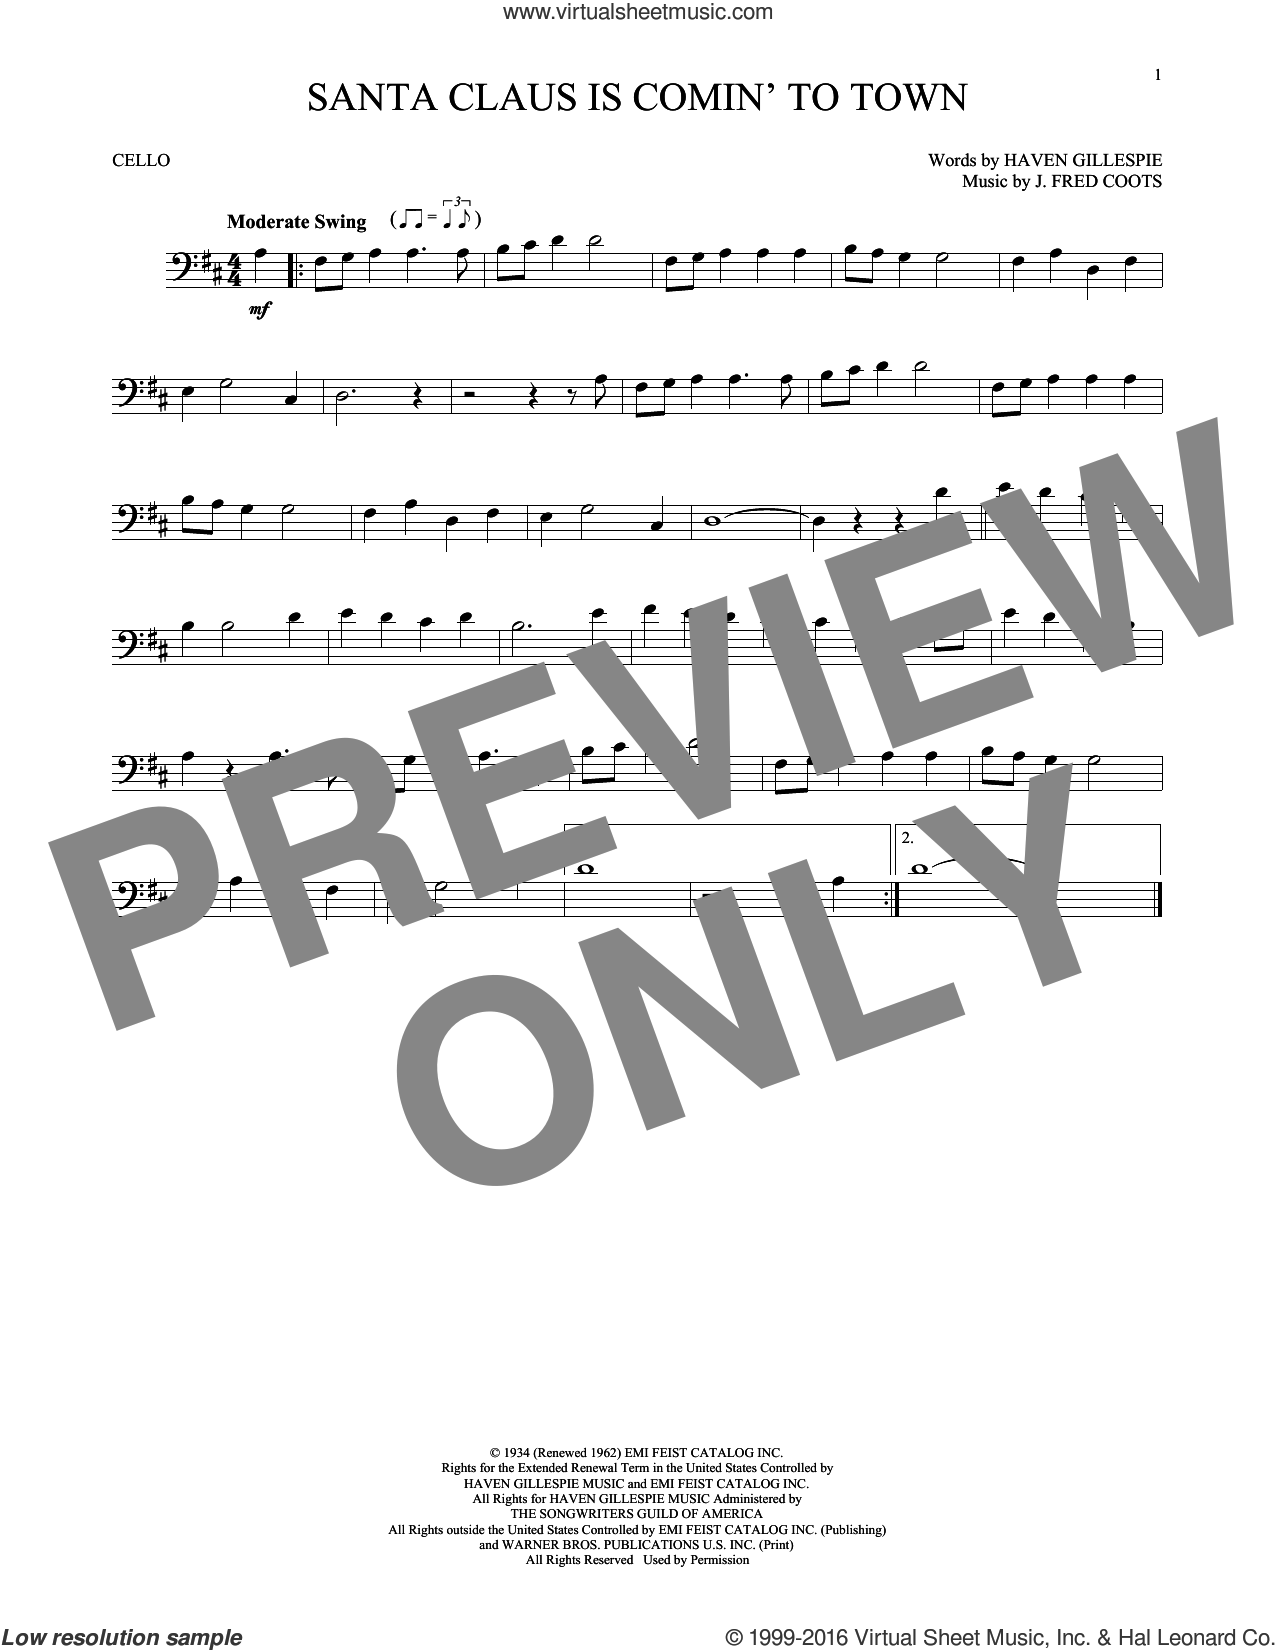 Santa Claus Is Comin' To Town sheet music for cello solo by J. Fred Coots and Haven Gillespie, intermediate skill level